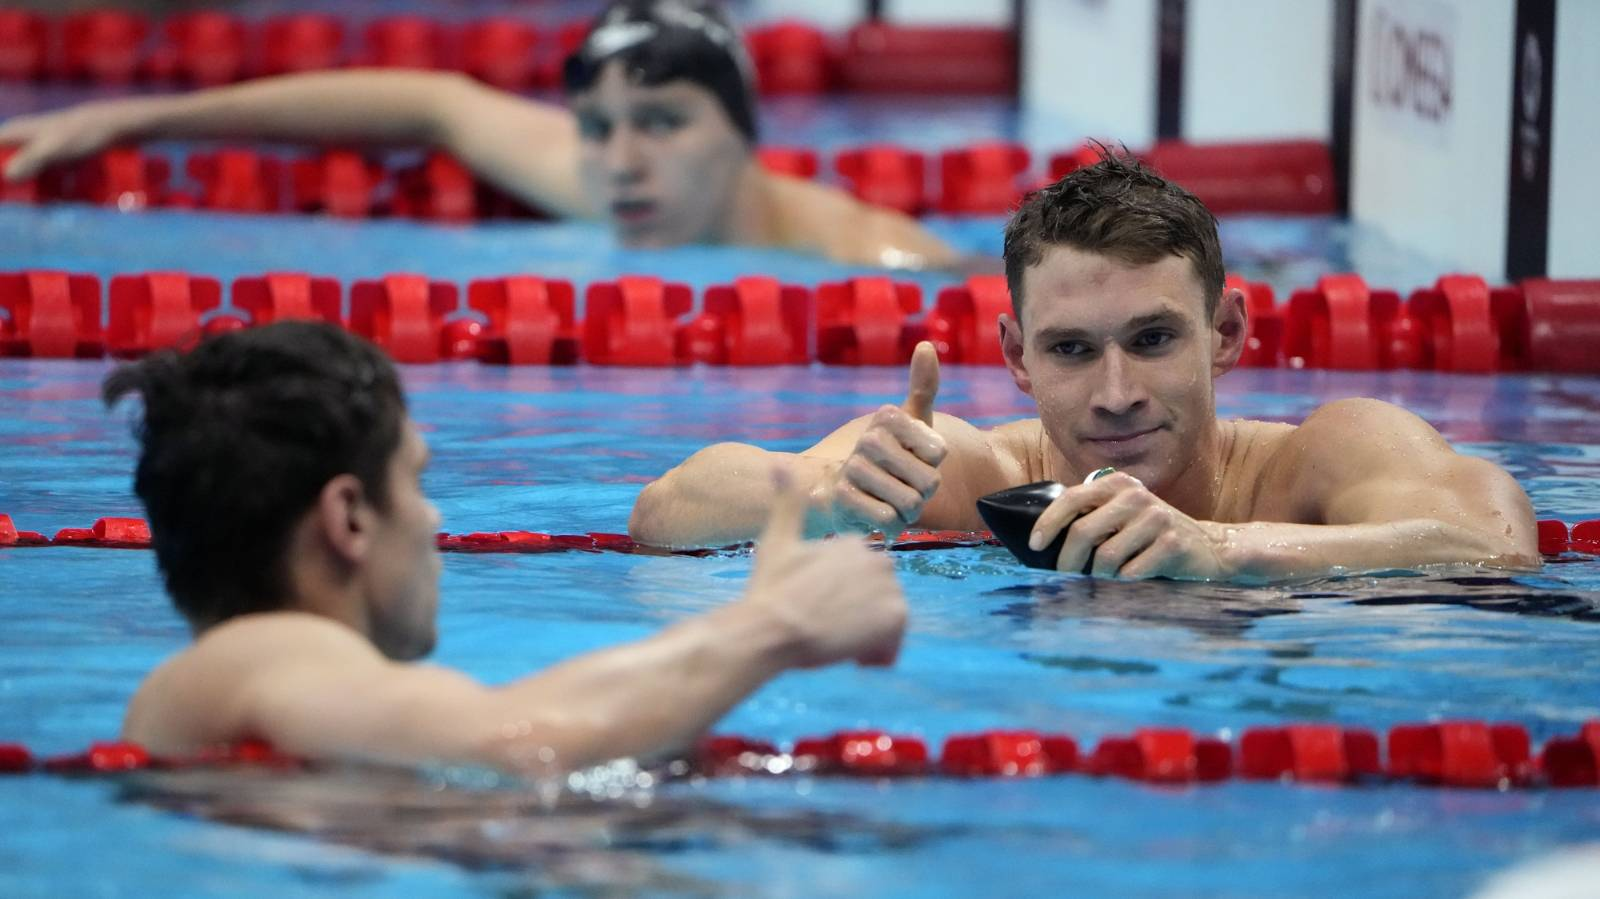 Frustrated US swimmer sparks doping accusations